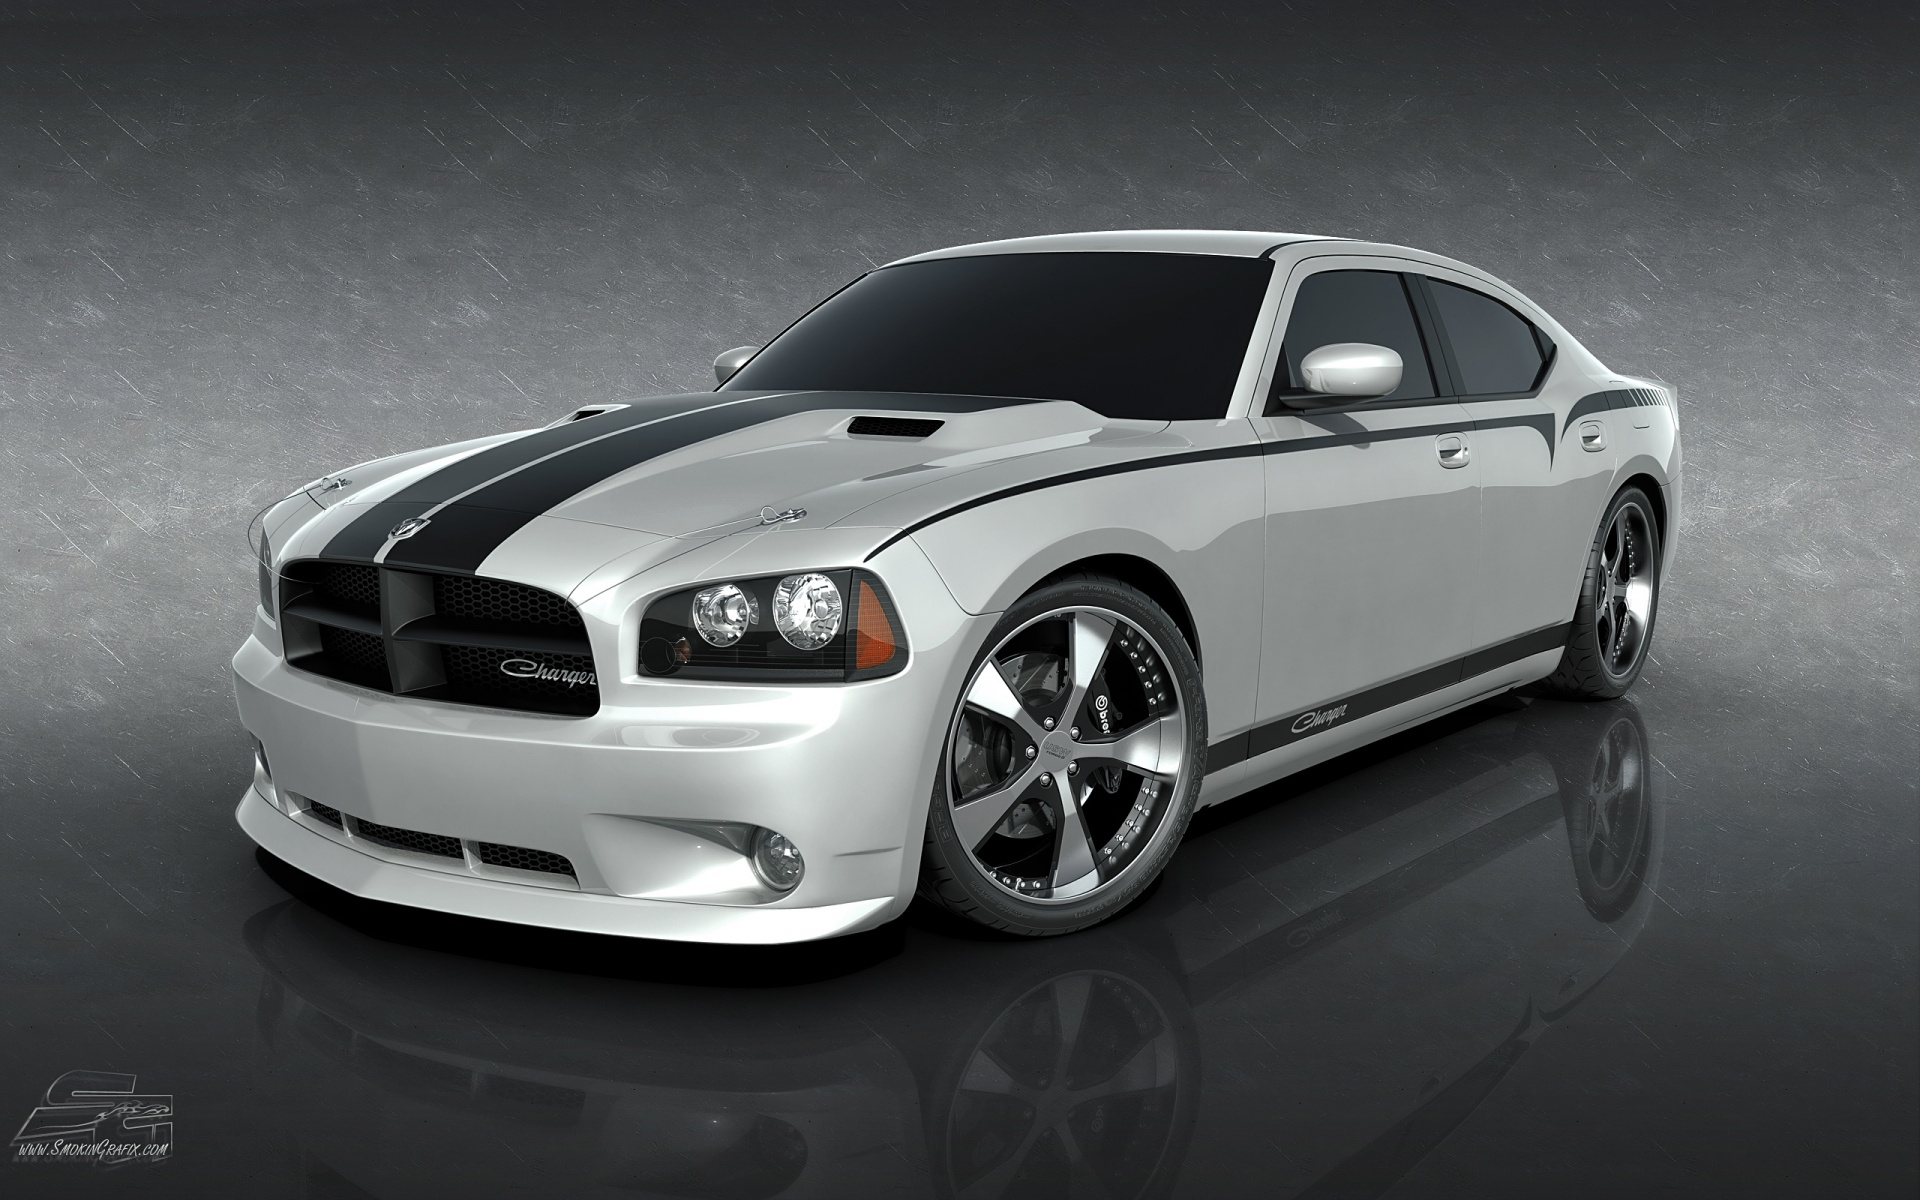 dodge charger wallpaper desktop muscle car auto wallpaper 1920x1200